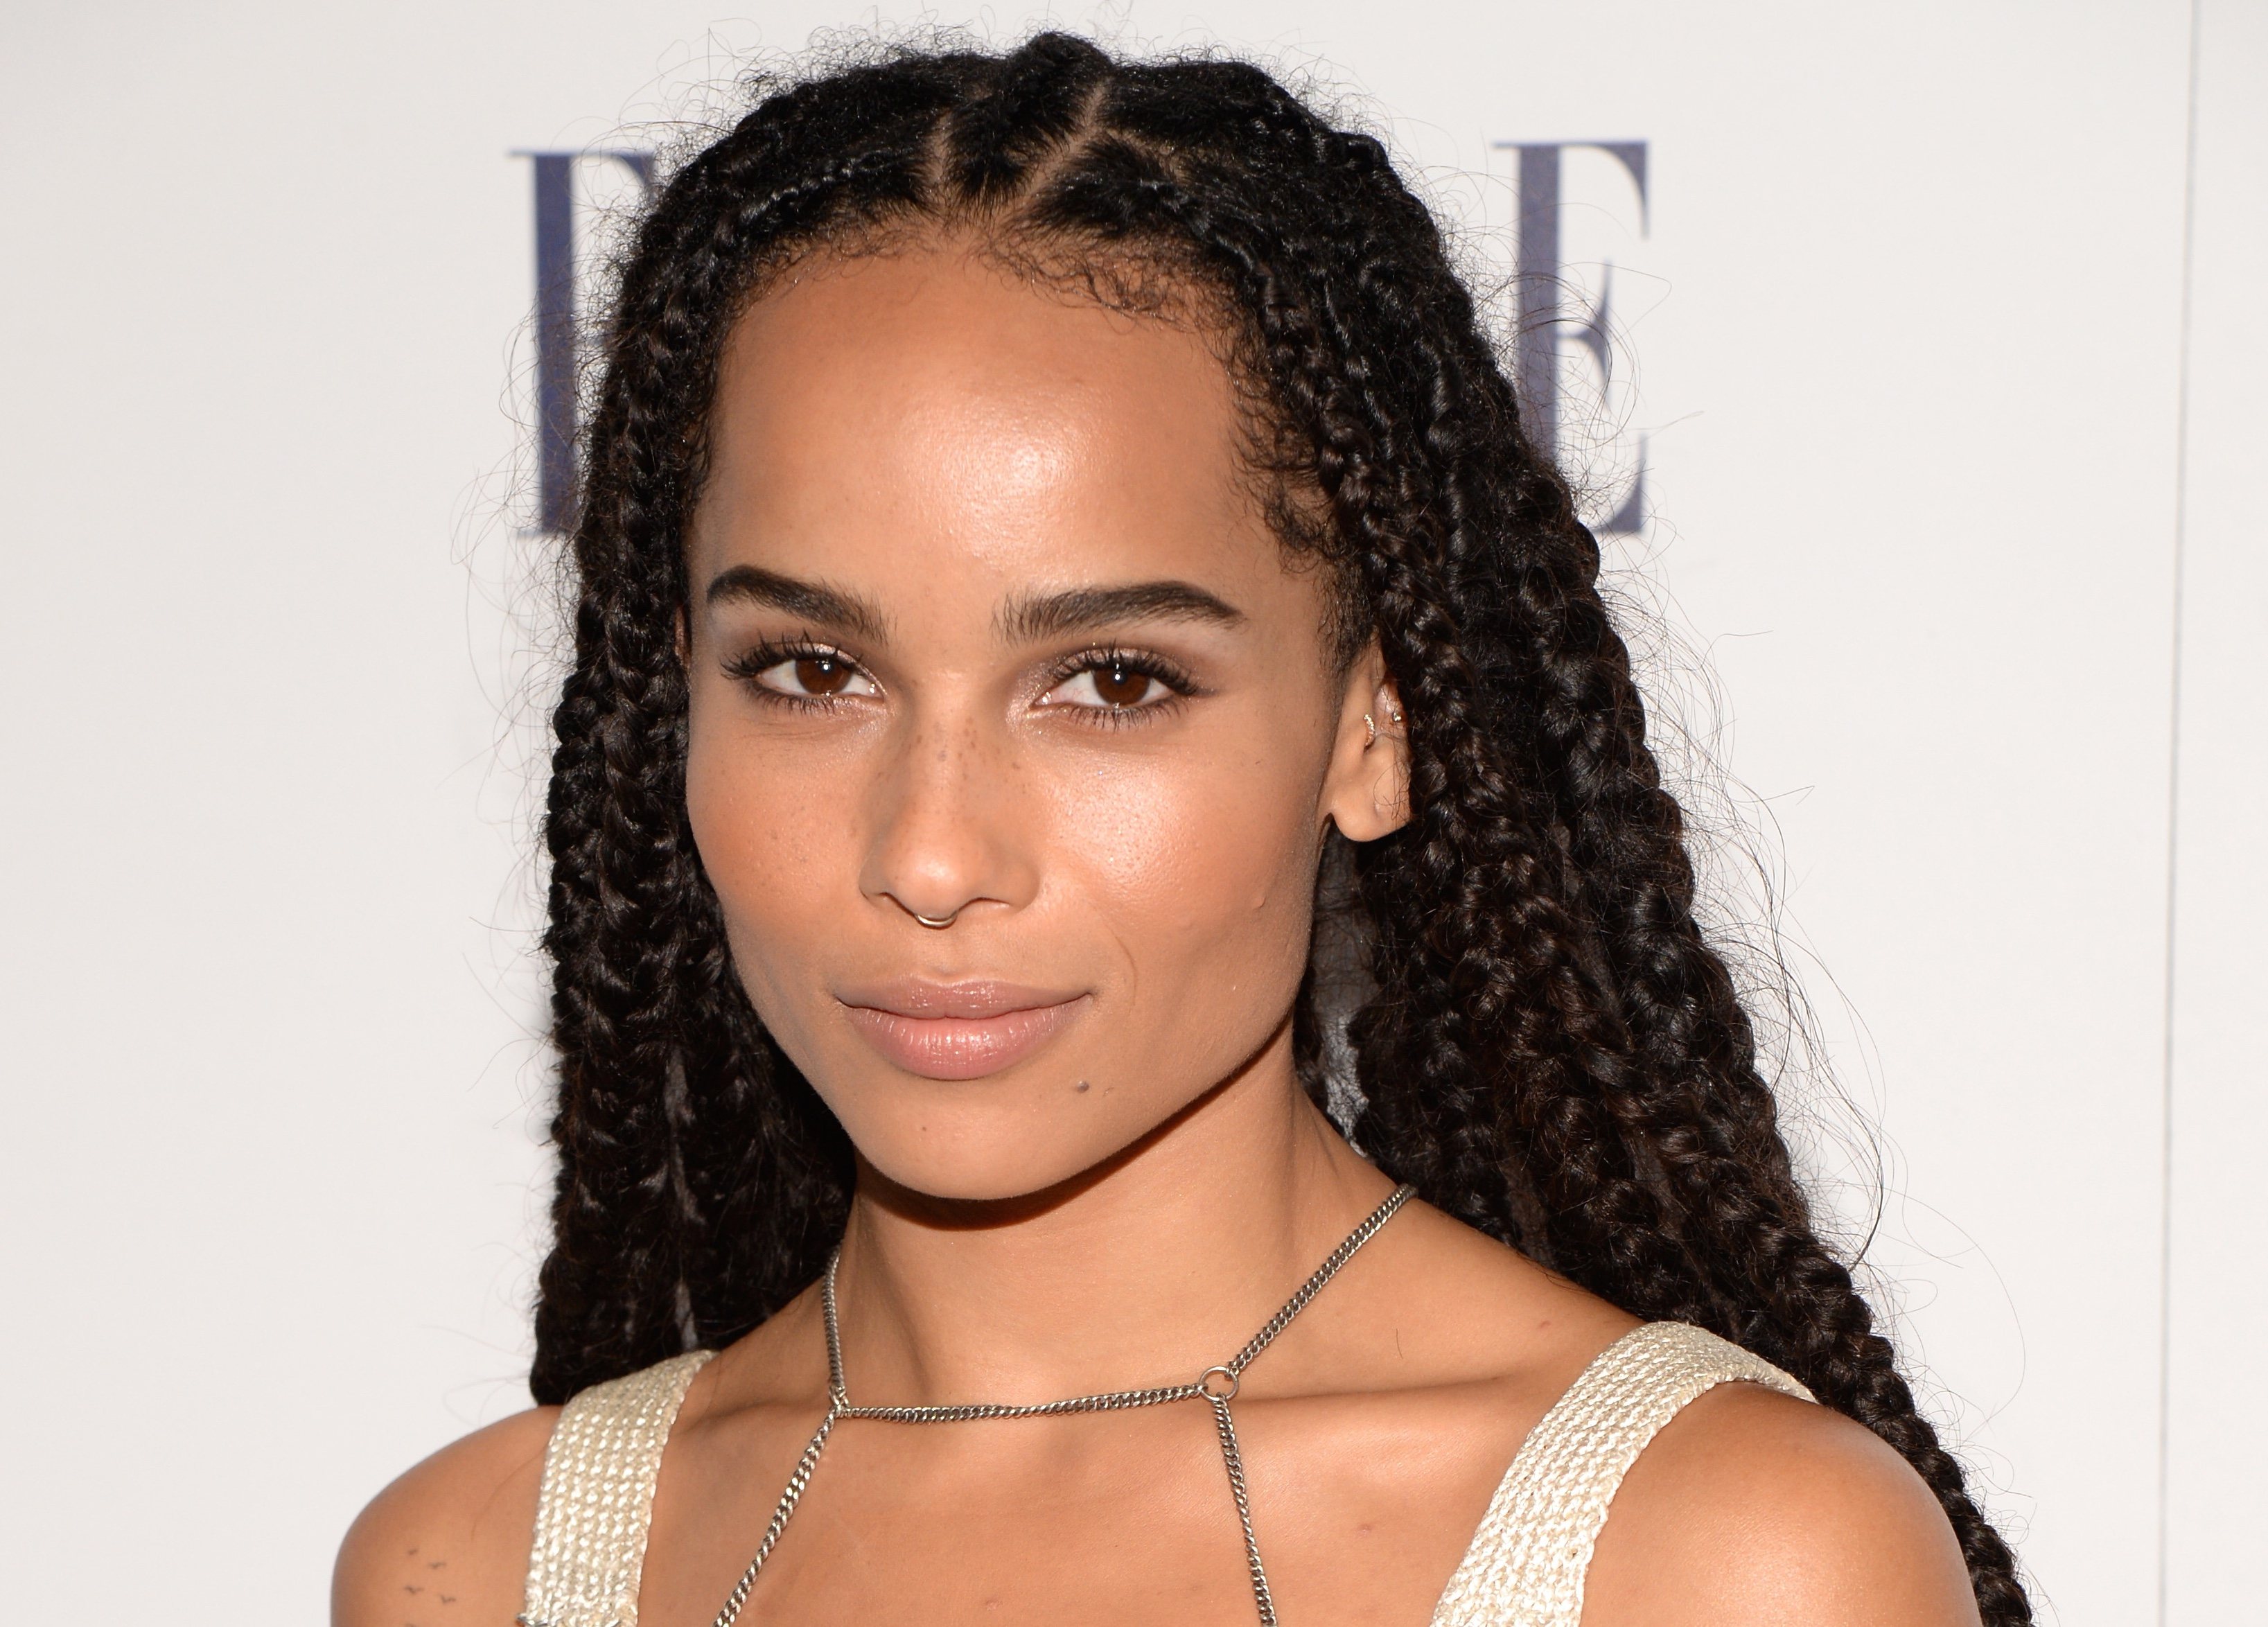 Zoe Kravitz Celebrity Wide Wallpaper Hd Wallpapers Hairstyles With Shot African Hair